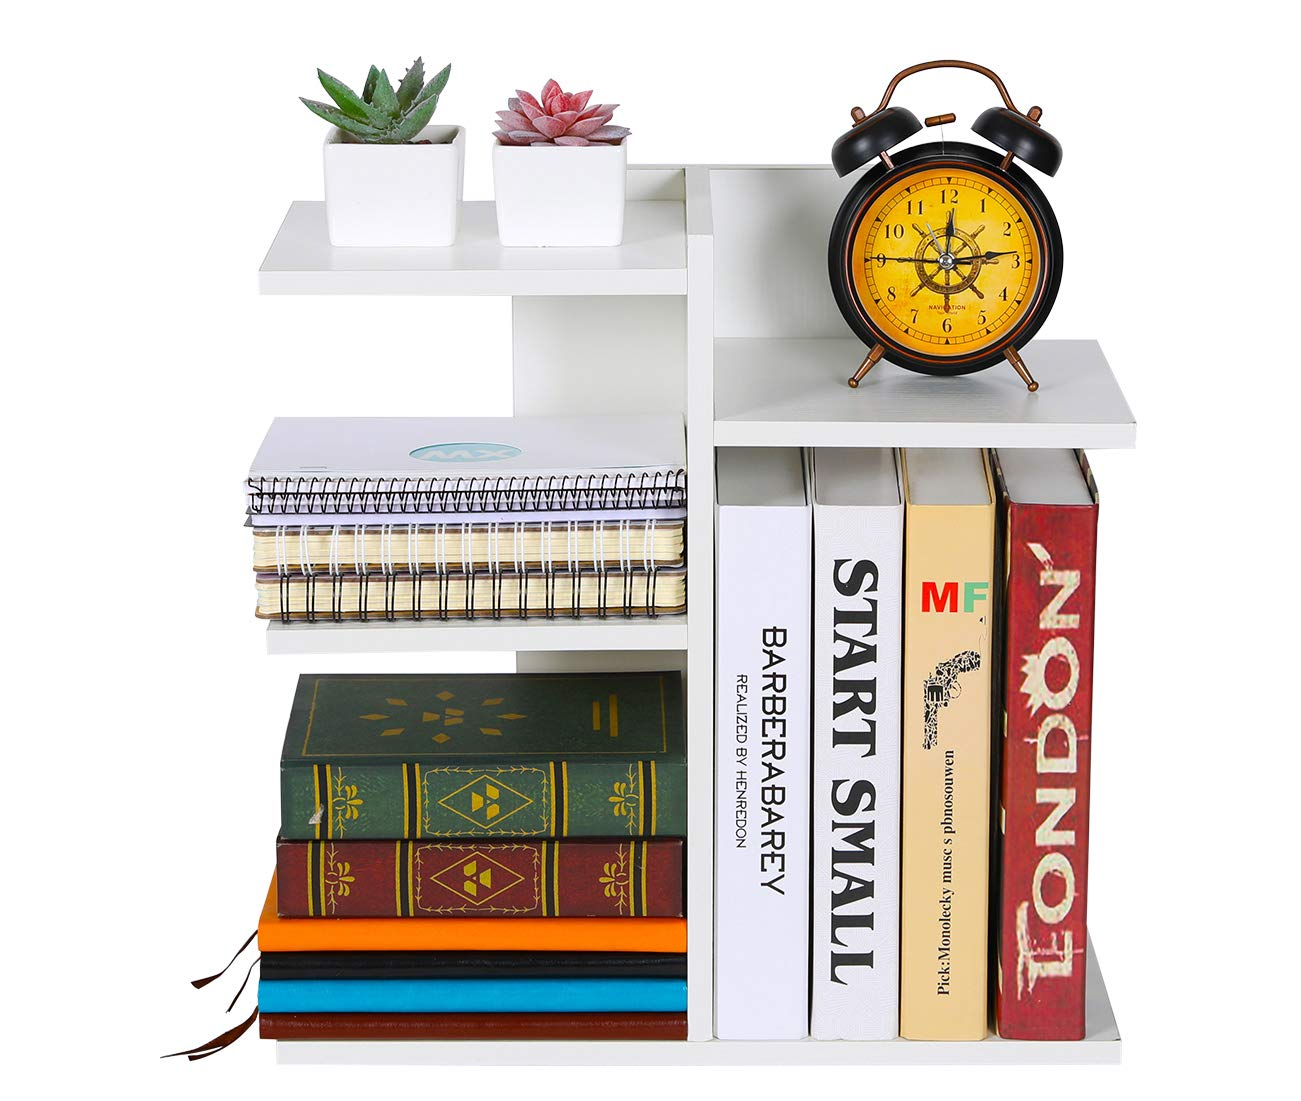 PAG Wood Desktop Bookshelf Assembled Countertop Bookcase Literature Holder Accessories Display Rack Office Supplies Desk Organizer, White by PAG (Image #3)